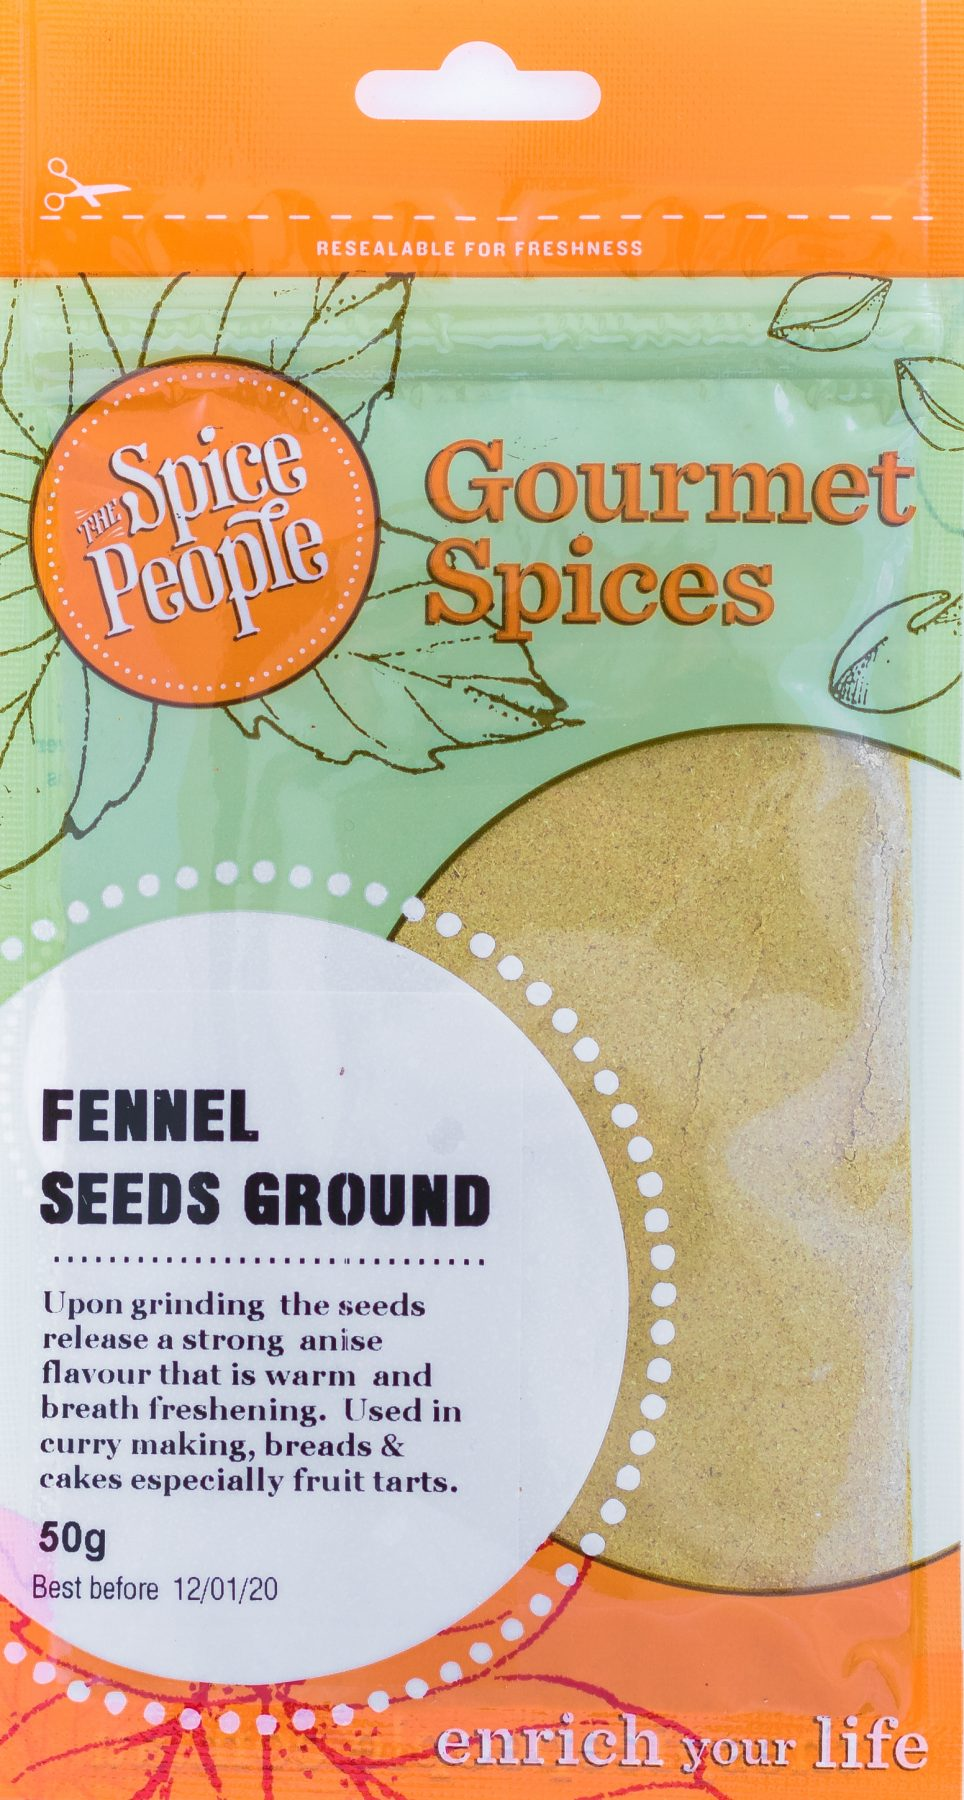 The Spice People Fennel Seeds Ground 50g-Groceries-The Spice People-Fresh Connection